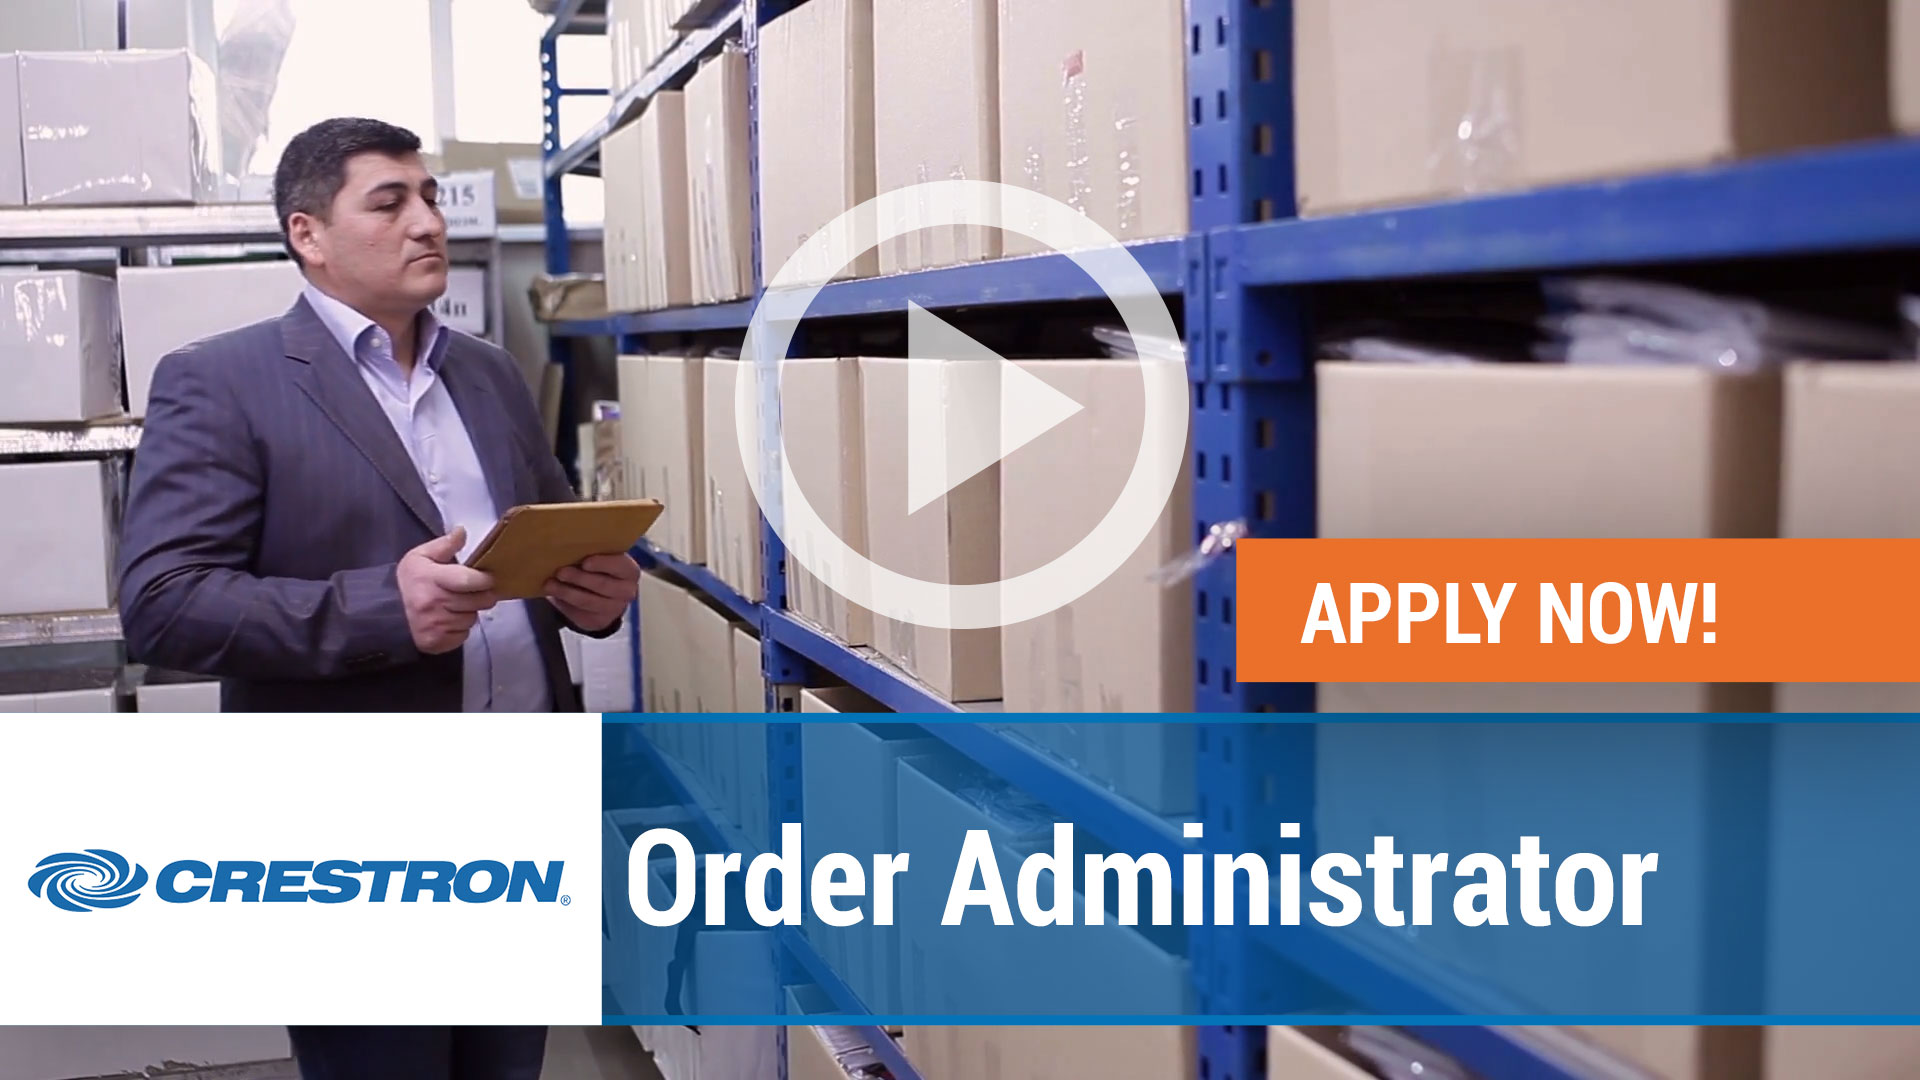 Watch our careers video for available job opening Order Administrator in Rockleigh, New Jersey